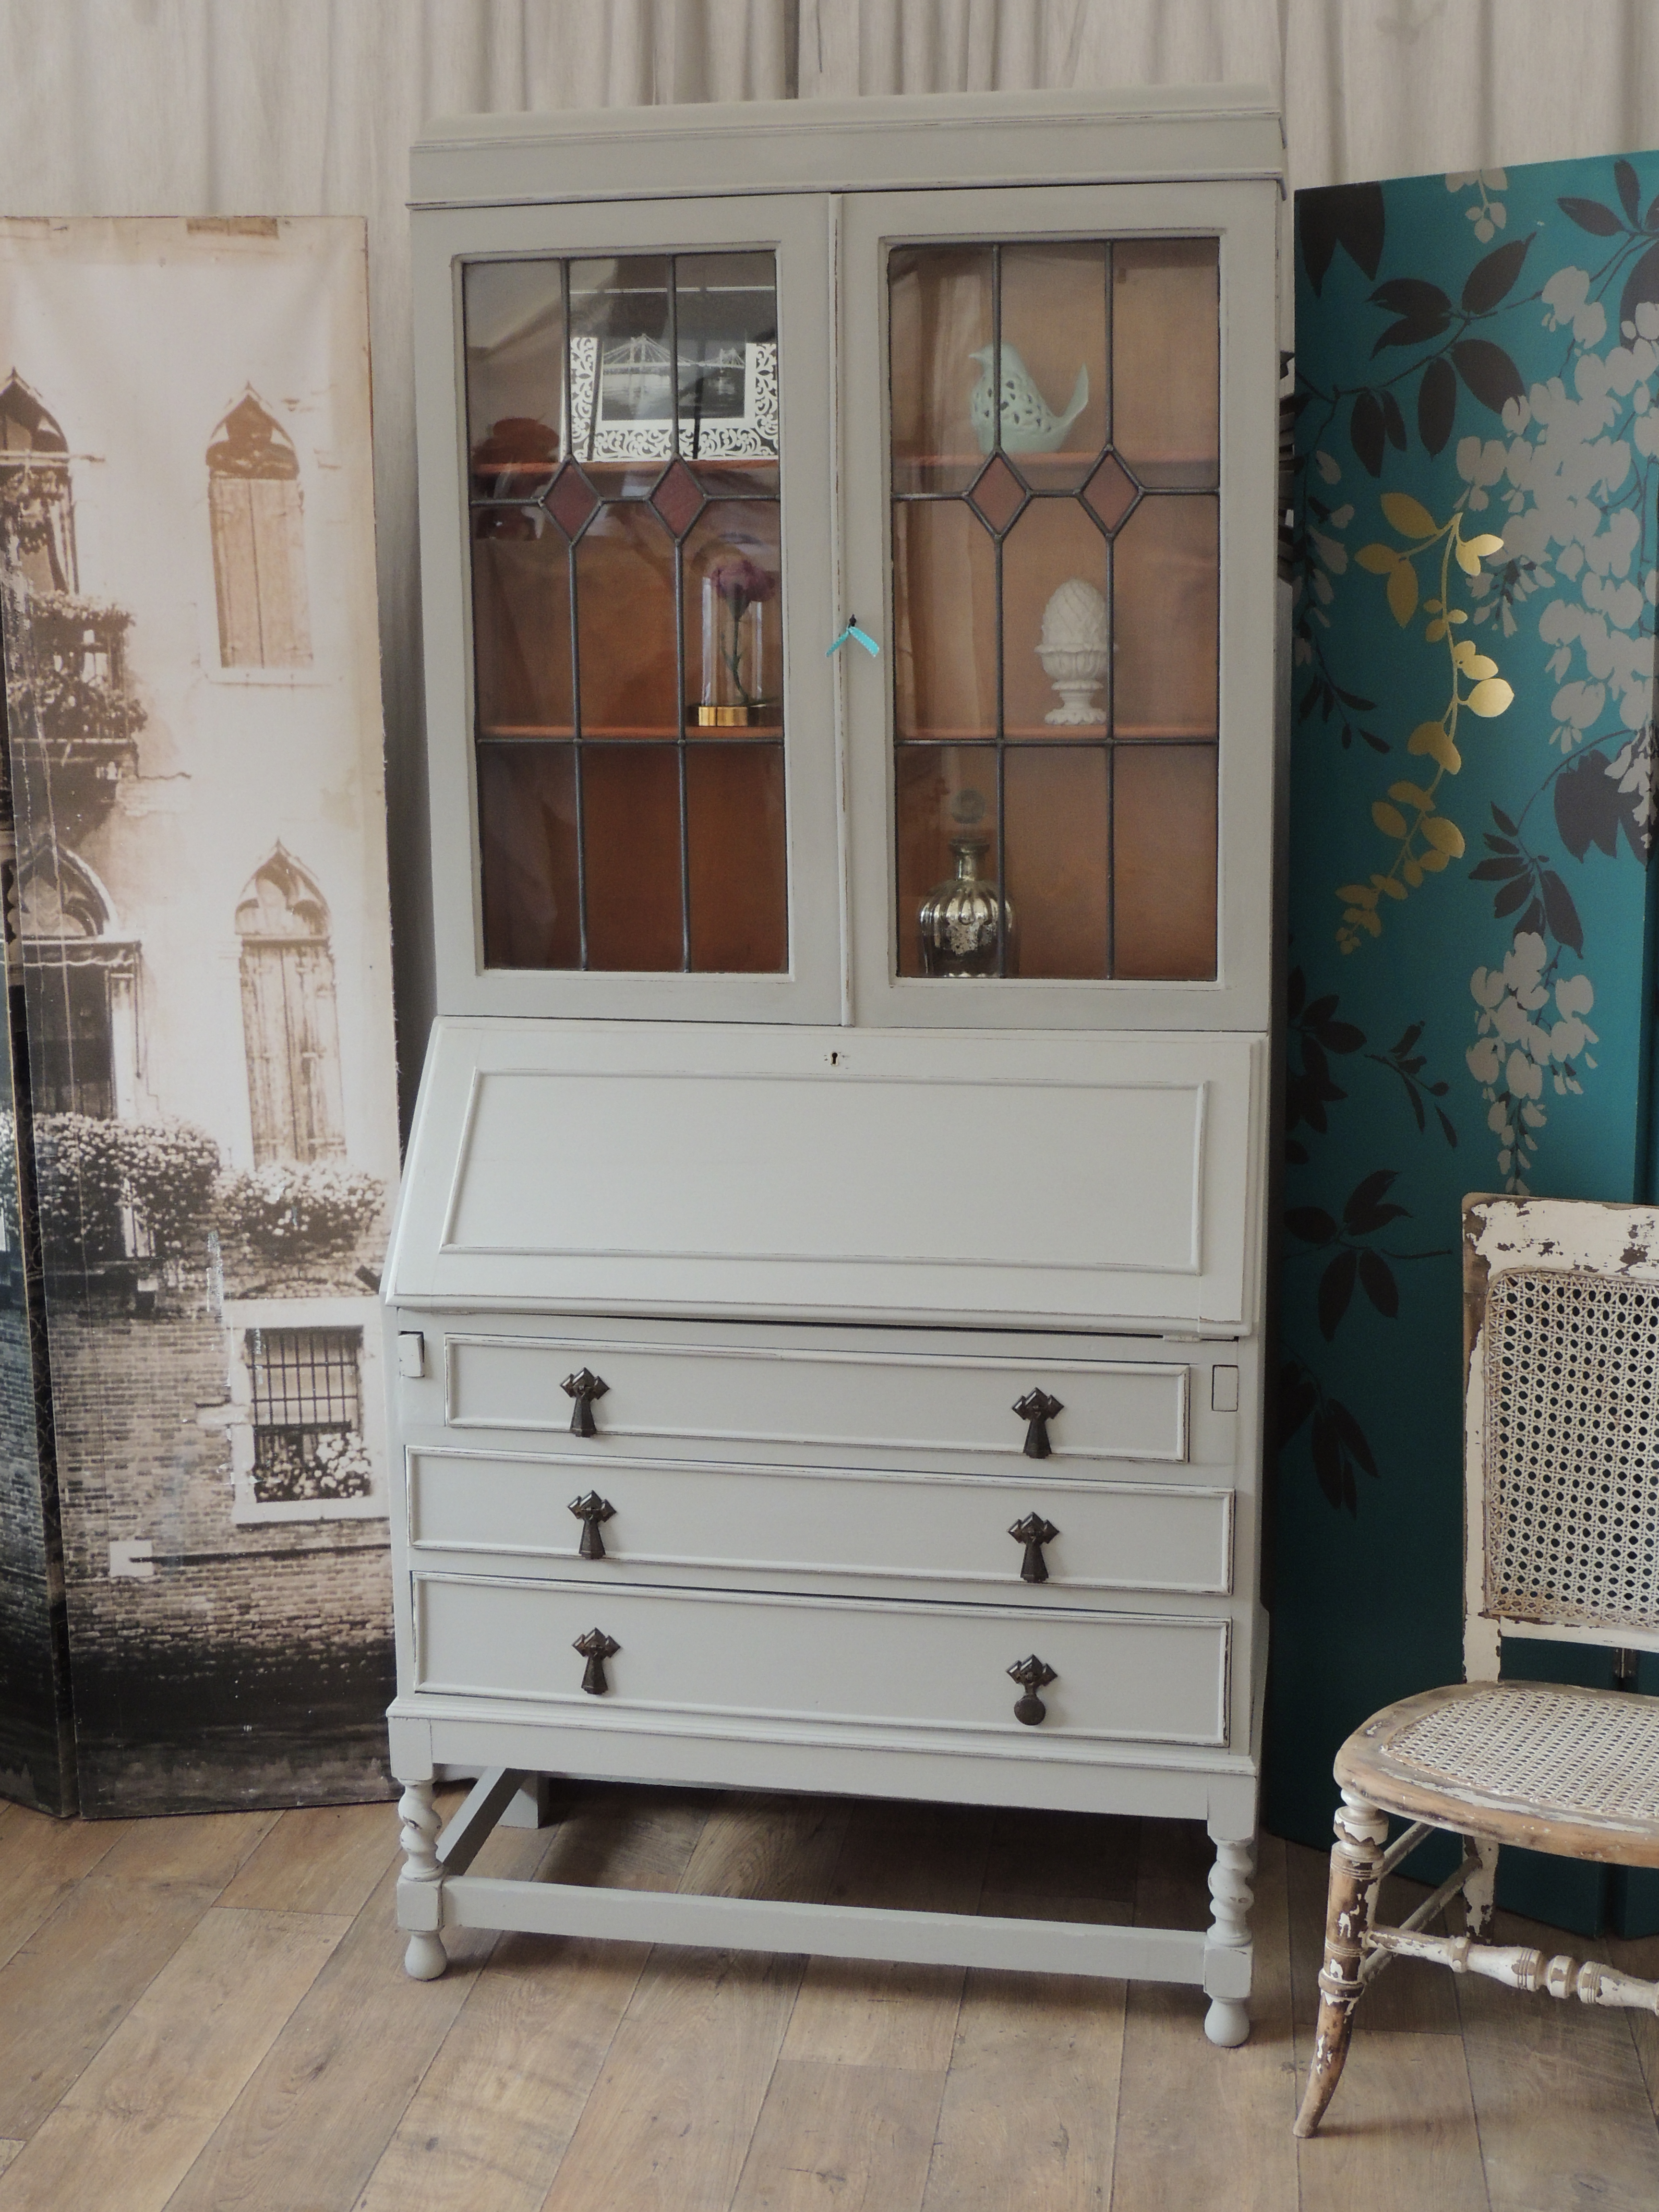 shabby chic writing bureau bookcase eclectivo london furniture with soul. Black Bedroom Furniture Sets. Home Design Ideas